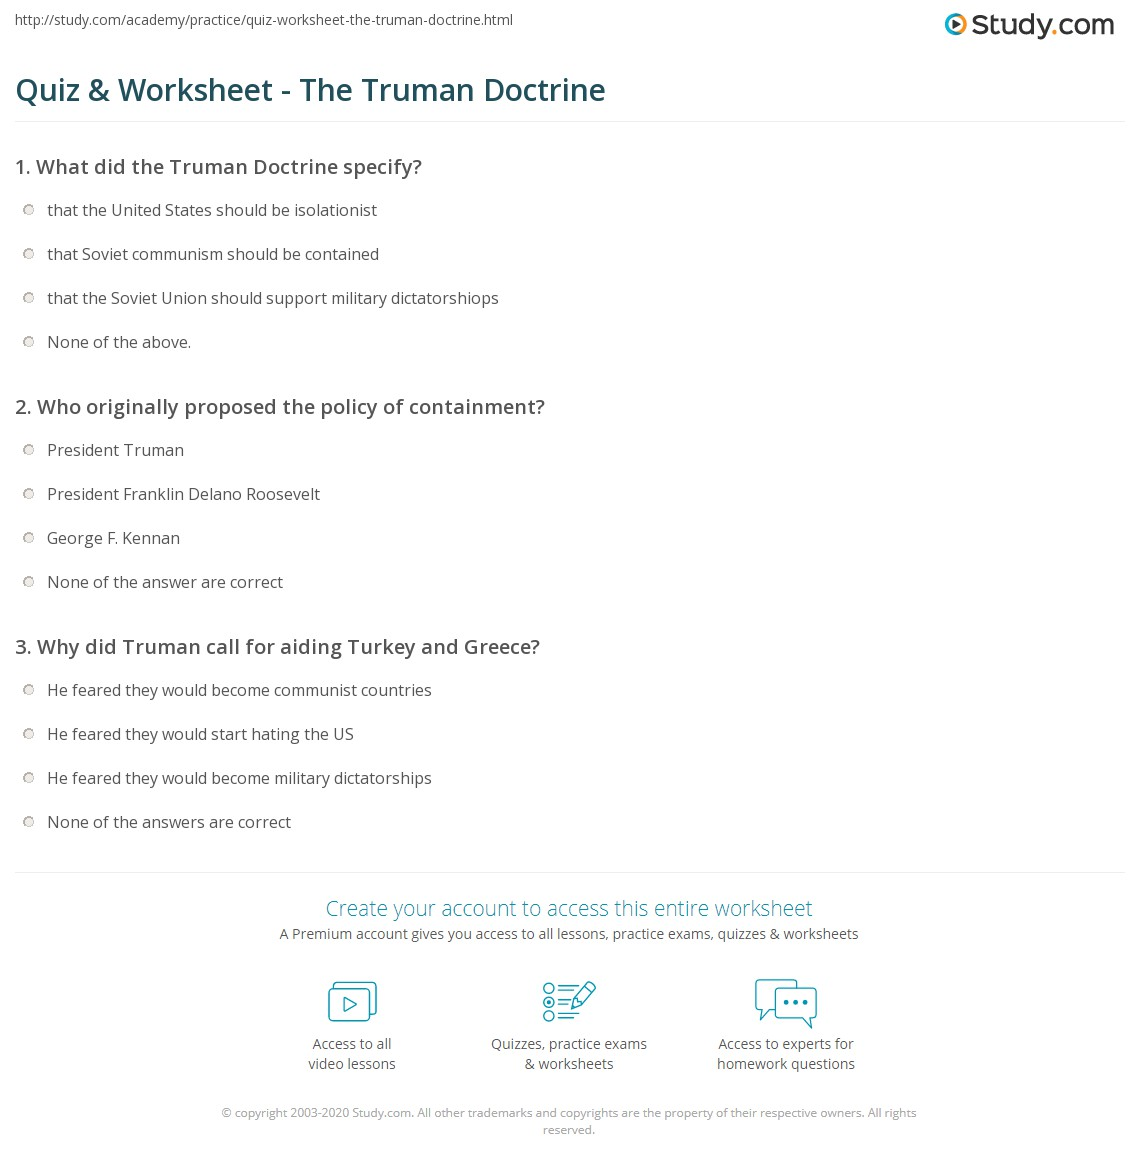 quiz worksheet the truman doctrine. Black Bedroom Furniture Sets. Home Design Ideas